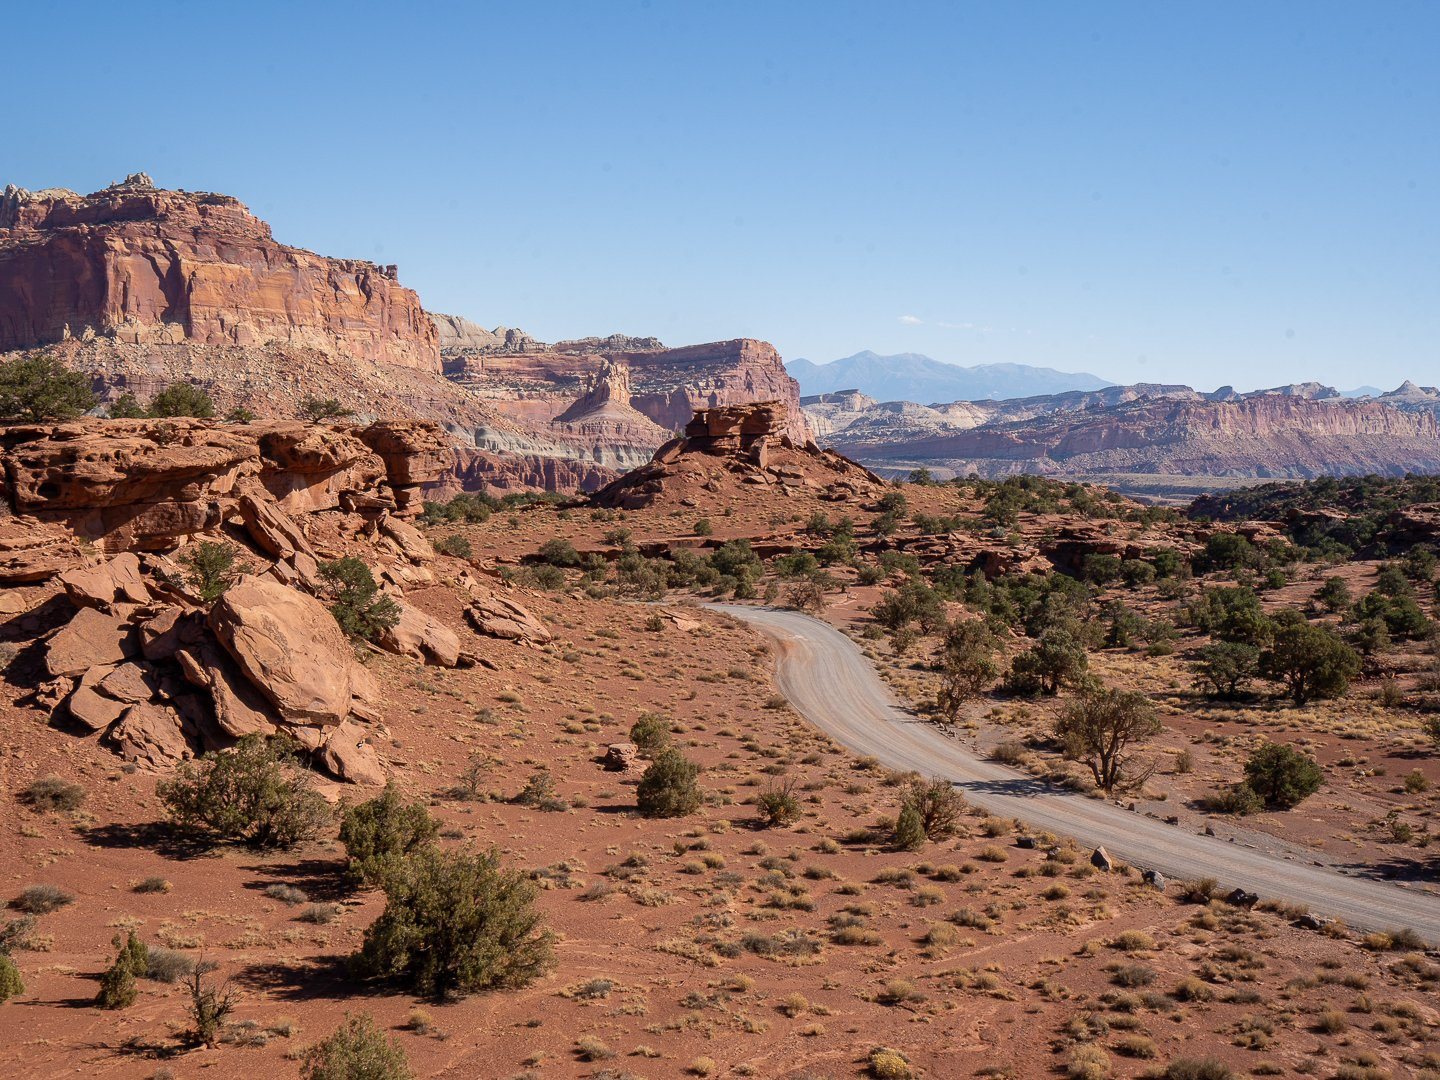 ENTRANCE-FEE-CAPITOL-REEF-NATIONAL-PARK